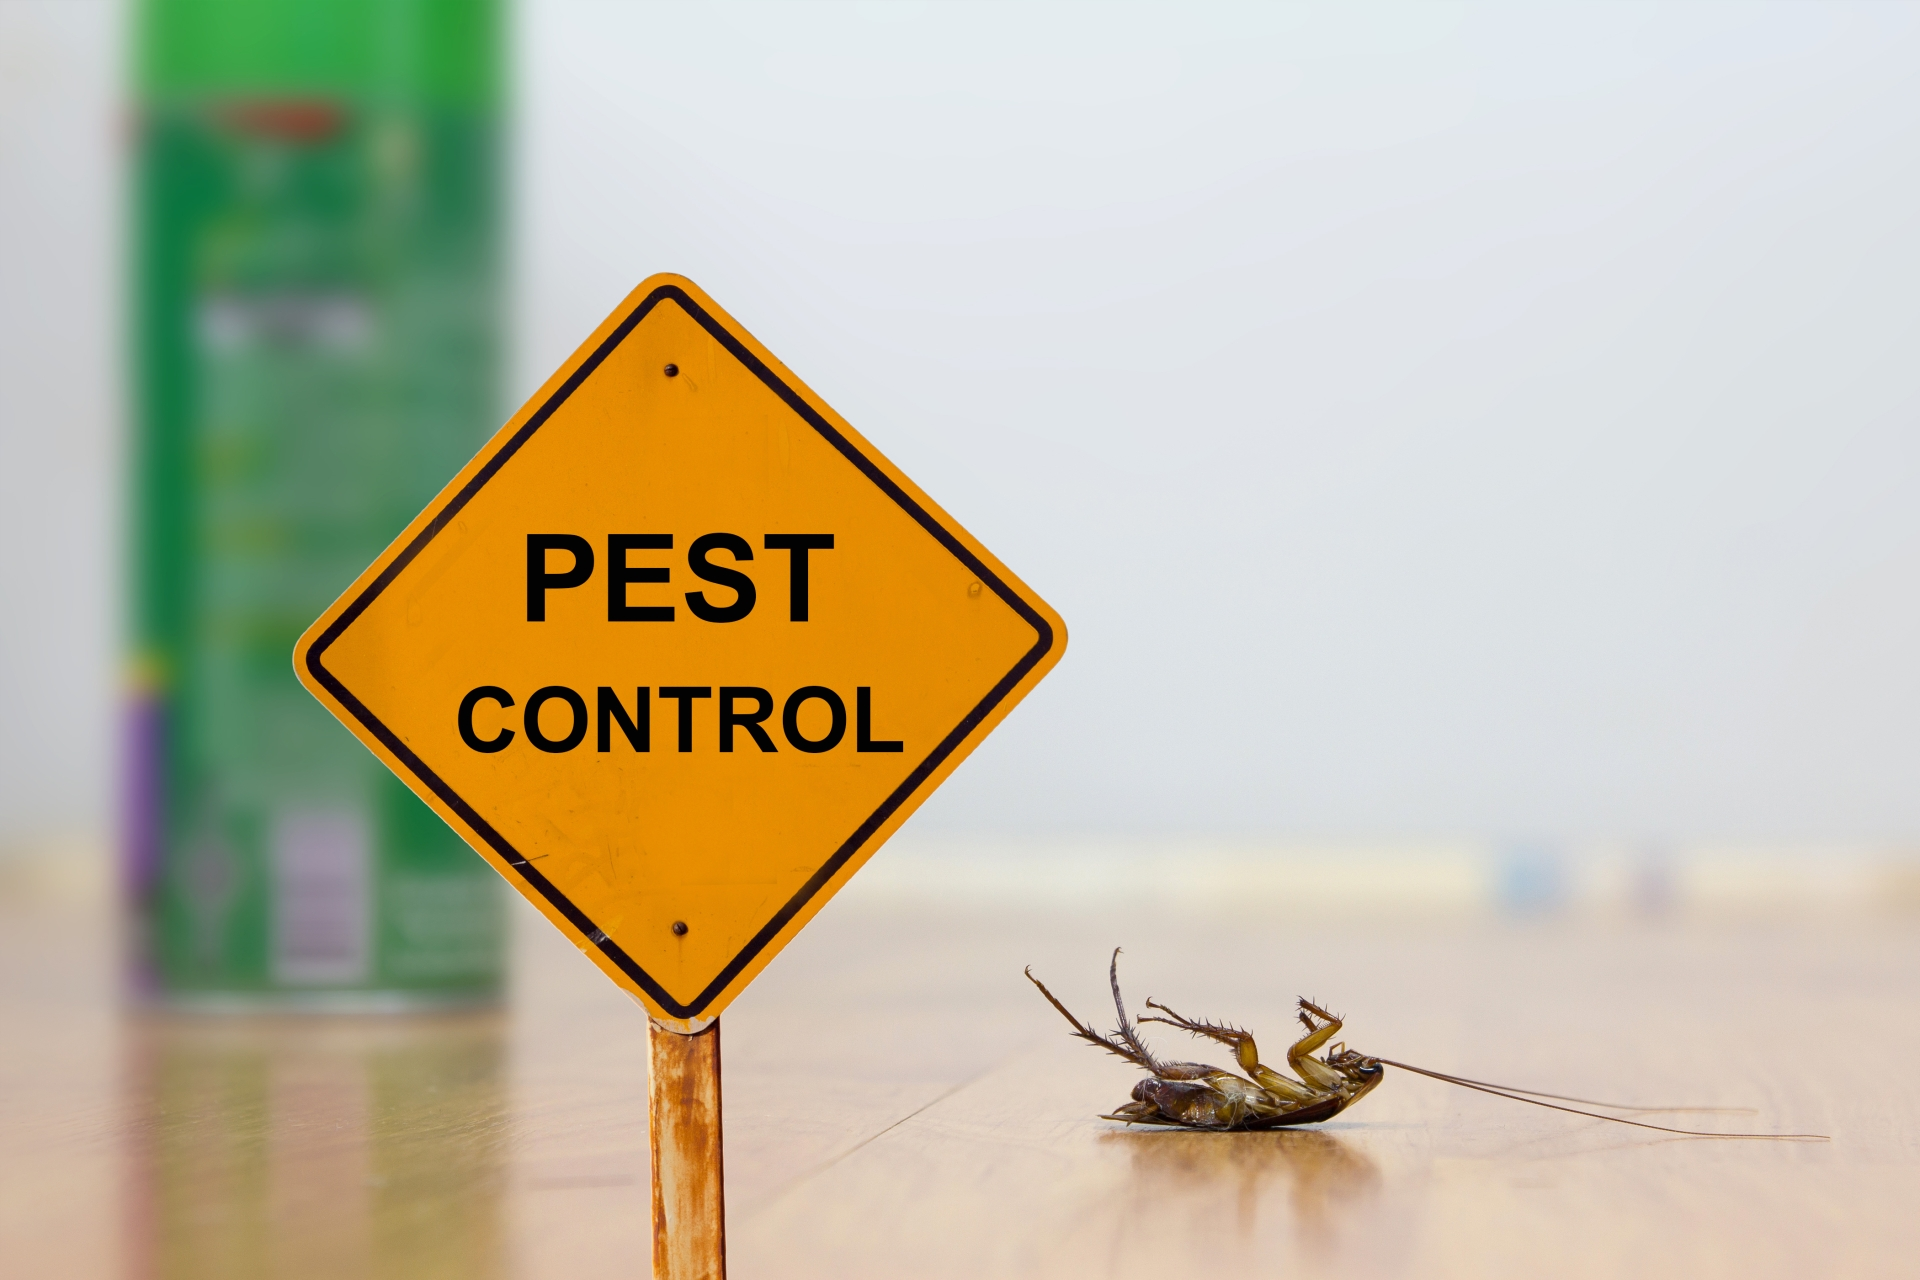 24 Hour Pest Control, Pest Control in Nine Elms, SW8. Call Now 020 8166 9746